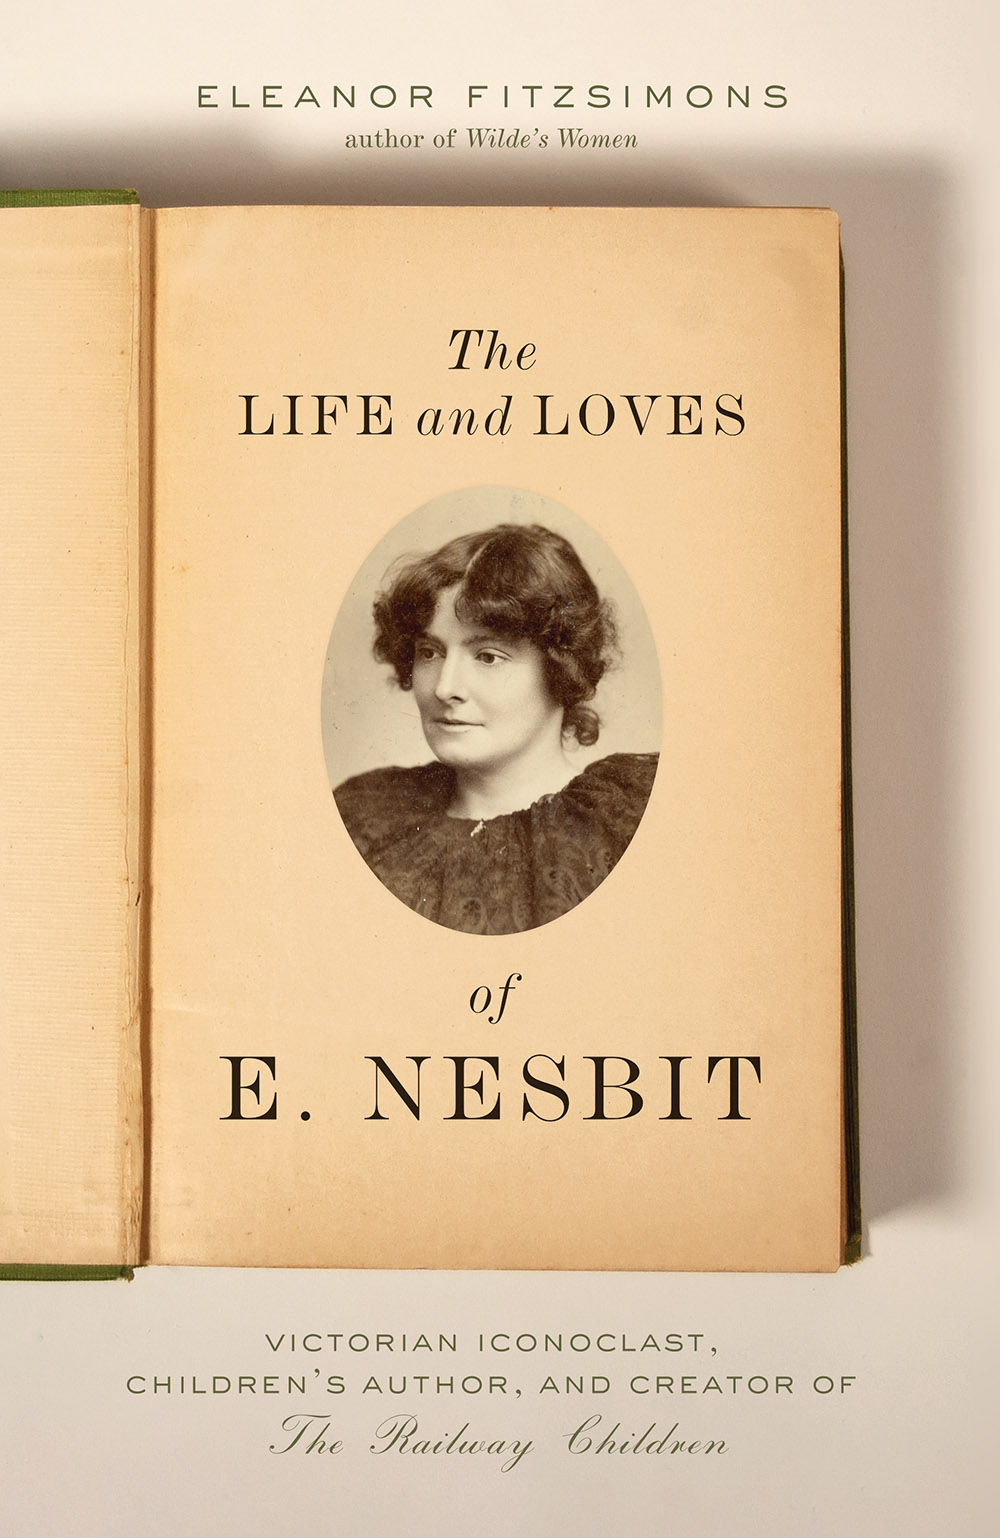 The Life and Loves of E. Nesbit: Victorian Iconoclast, Children's Author, and Creator of The Railway Children